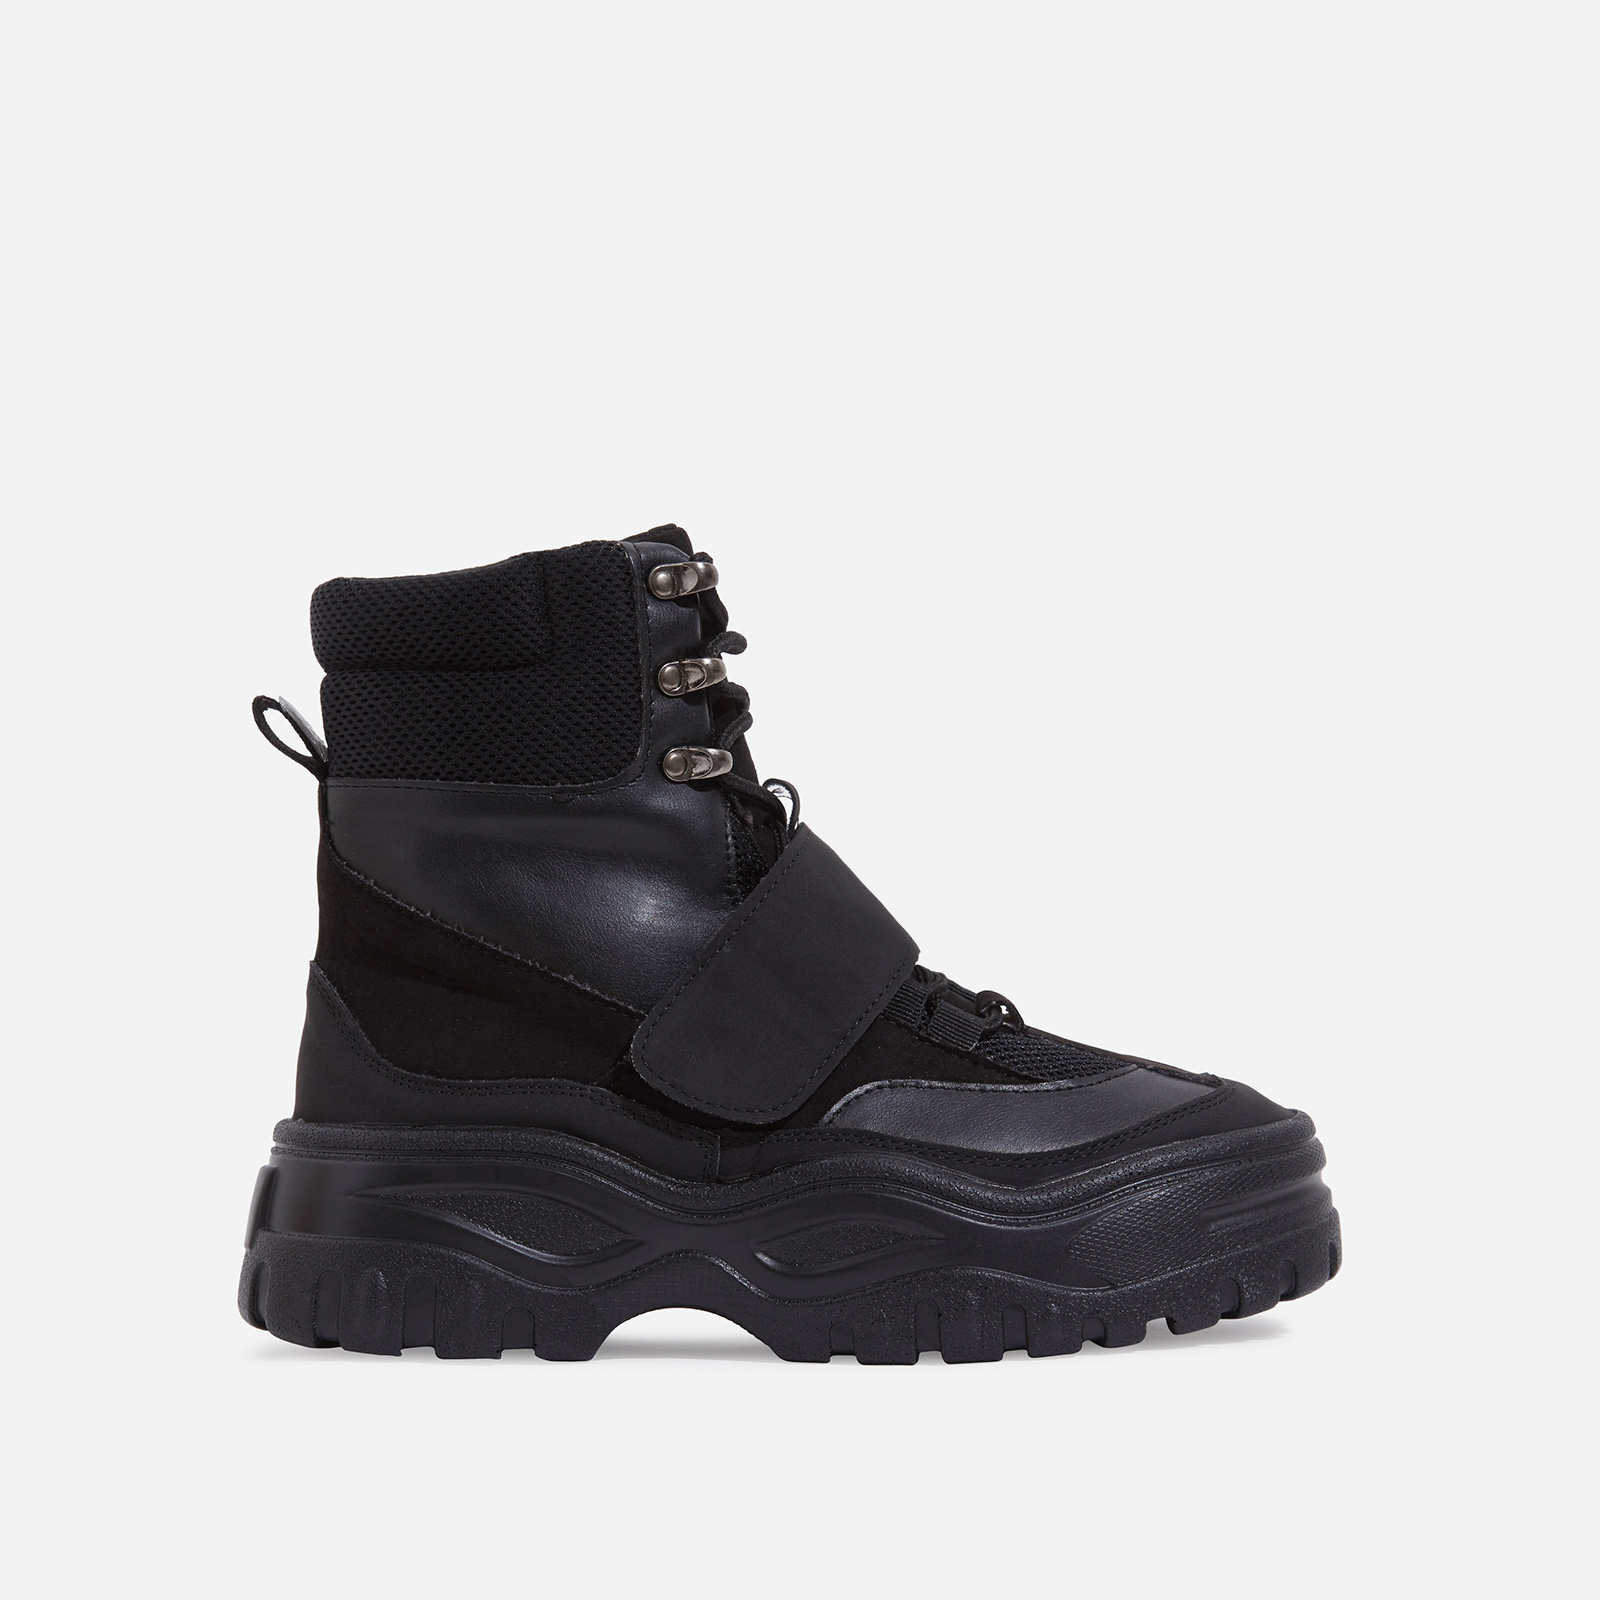 Rover Lace Up Ankle Hiker Boot In Black Faux Leather And Suede